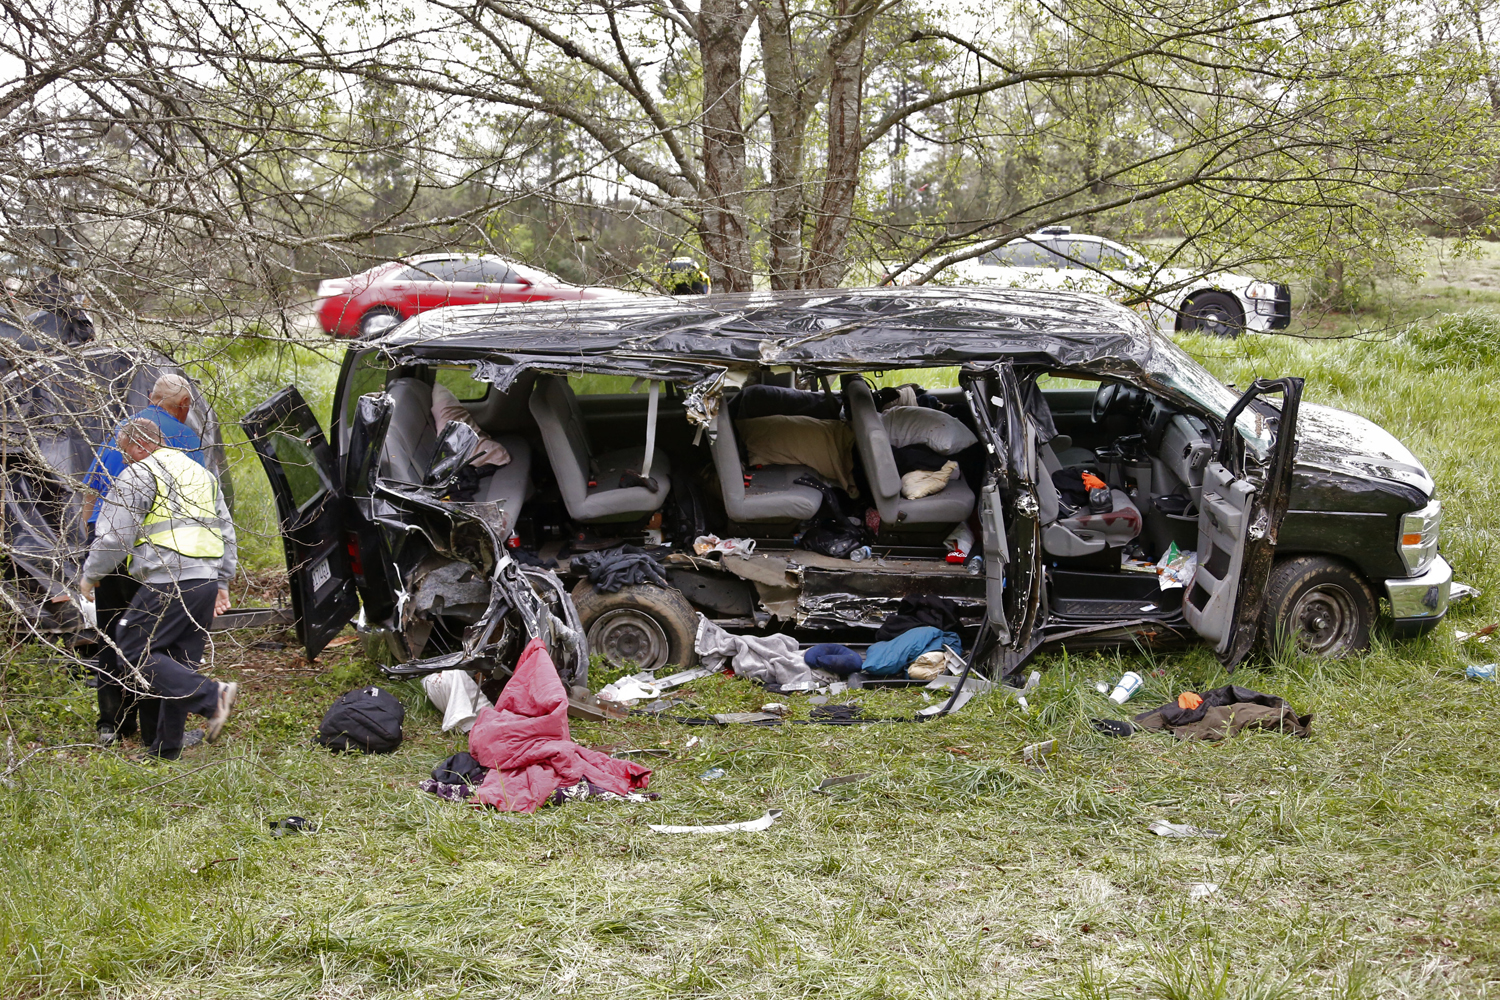 Investigators work at the scene where three people died on April 6, 2015, when a van carrying members of two heavy-metal bands crashed near the town of Commerce, Ga.